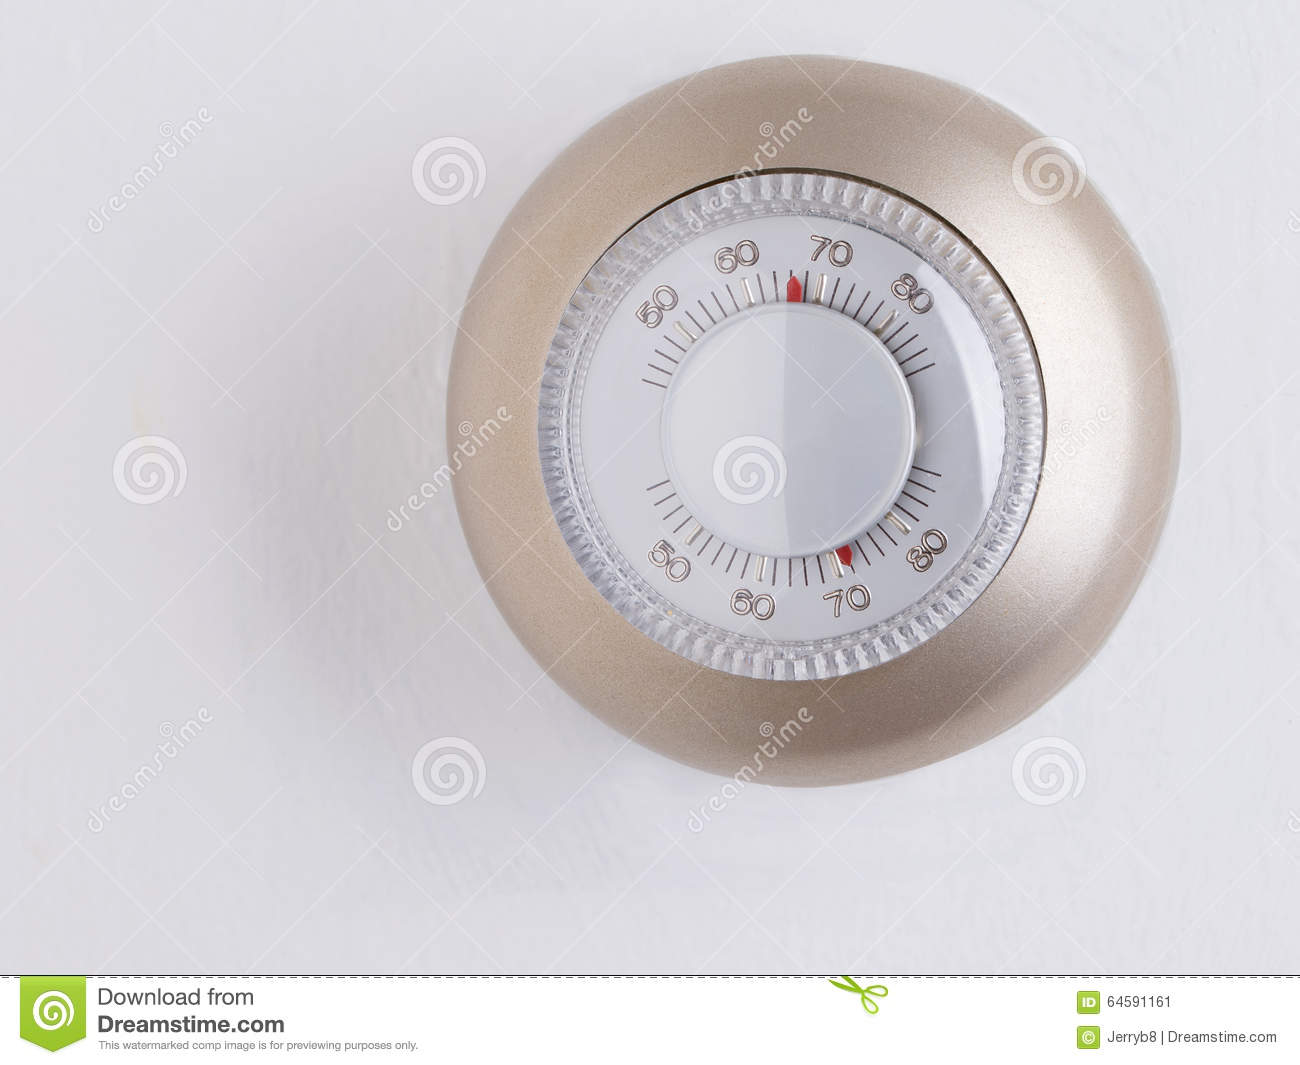 Home thermostat stock photo image 64591161 for Heat setting for home